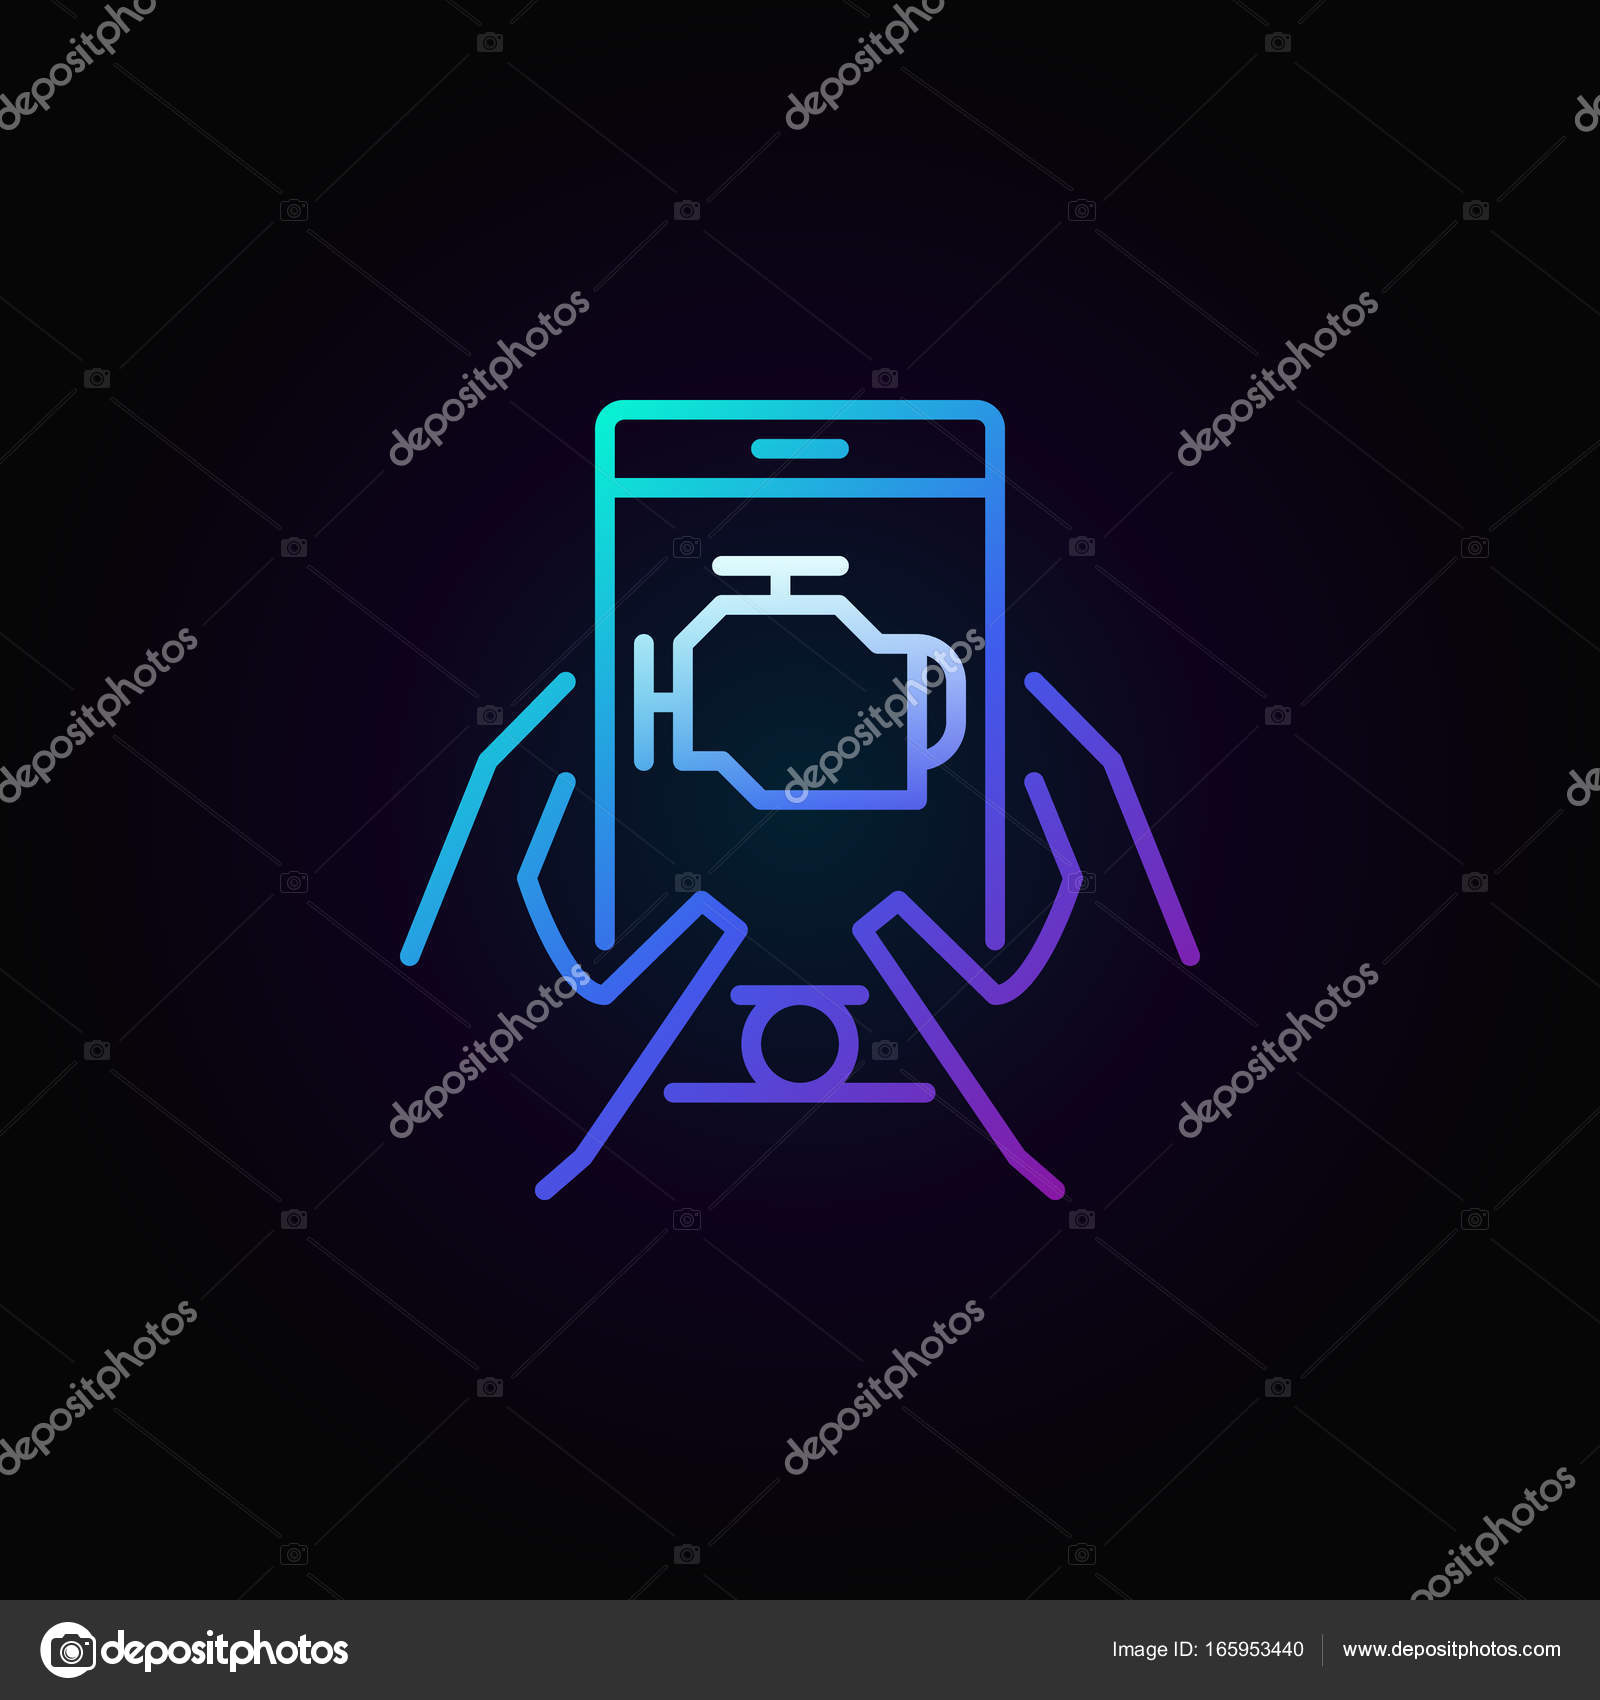 Colorful car diagnostics icon stock vector sn3g 165953440 colorful car engine diagnostics via smart phone vector linear icon or logo element on dark background vector by sn3g biocorpaavc Gallery